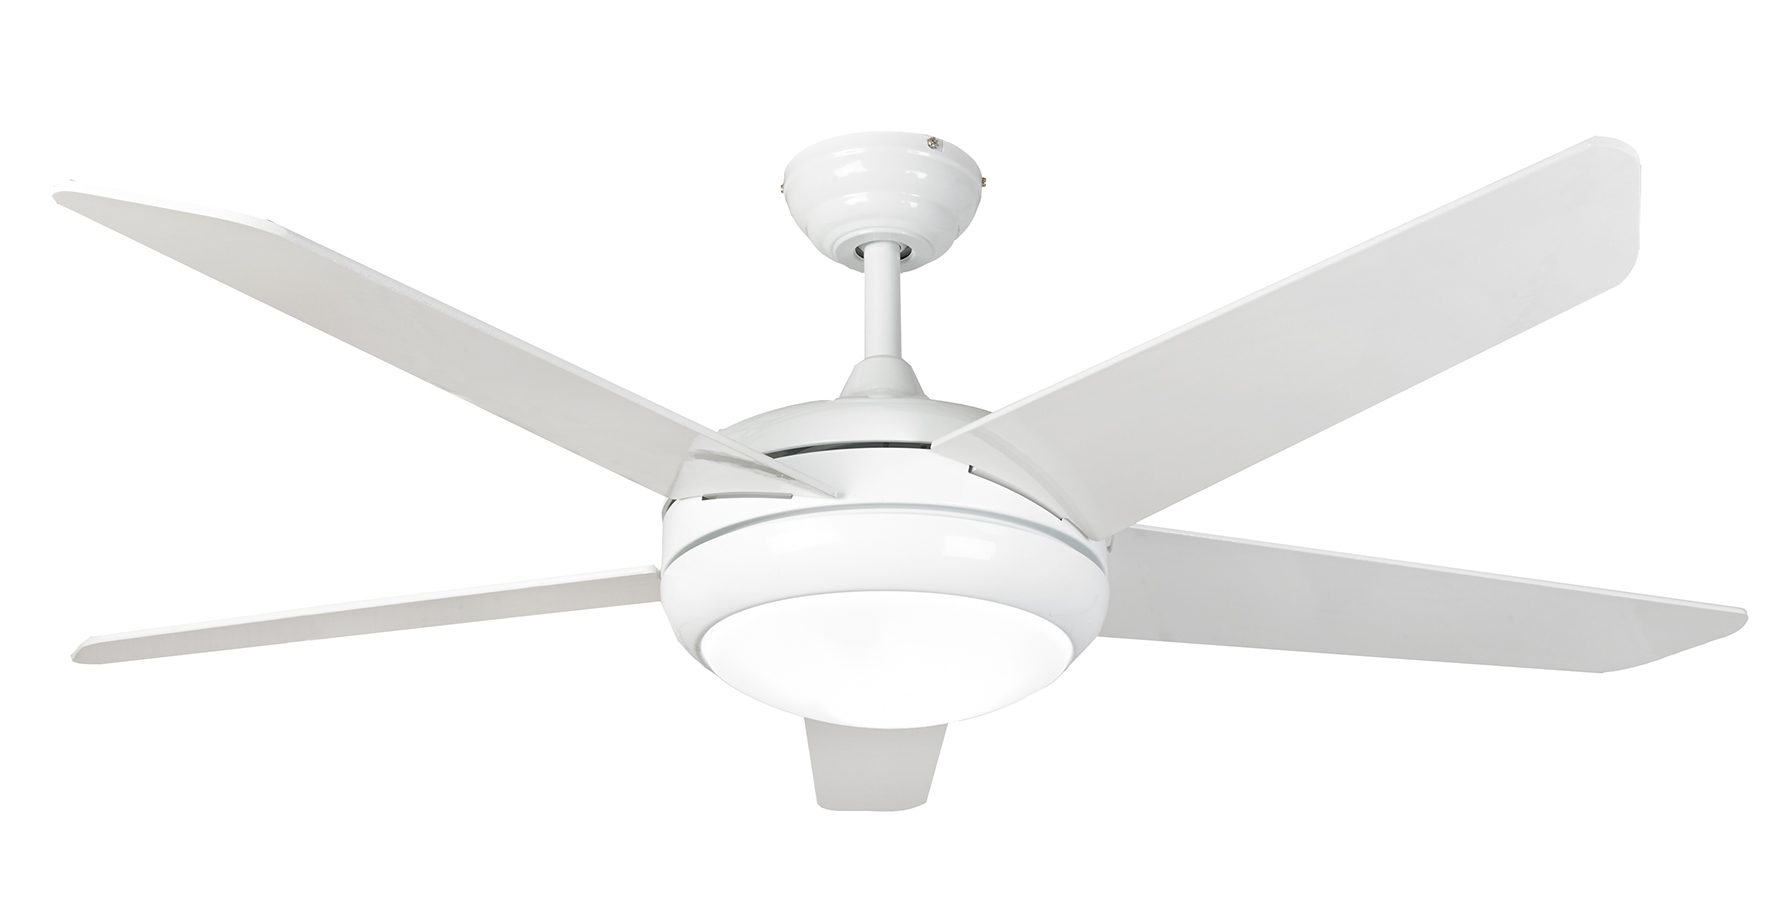 Eurofans Neptune 44 White Ceiling Fan Remote Control Led Light 115861